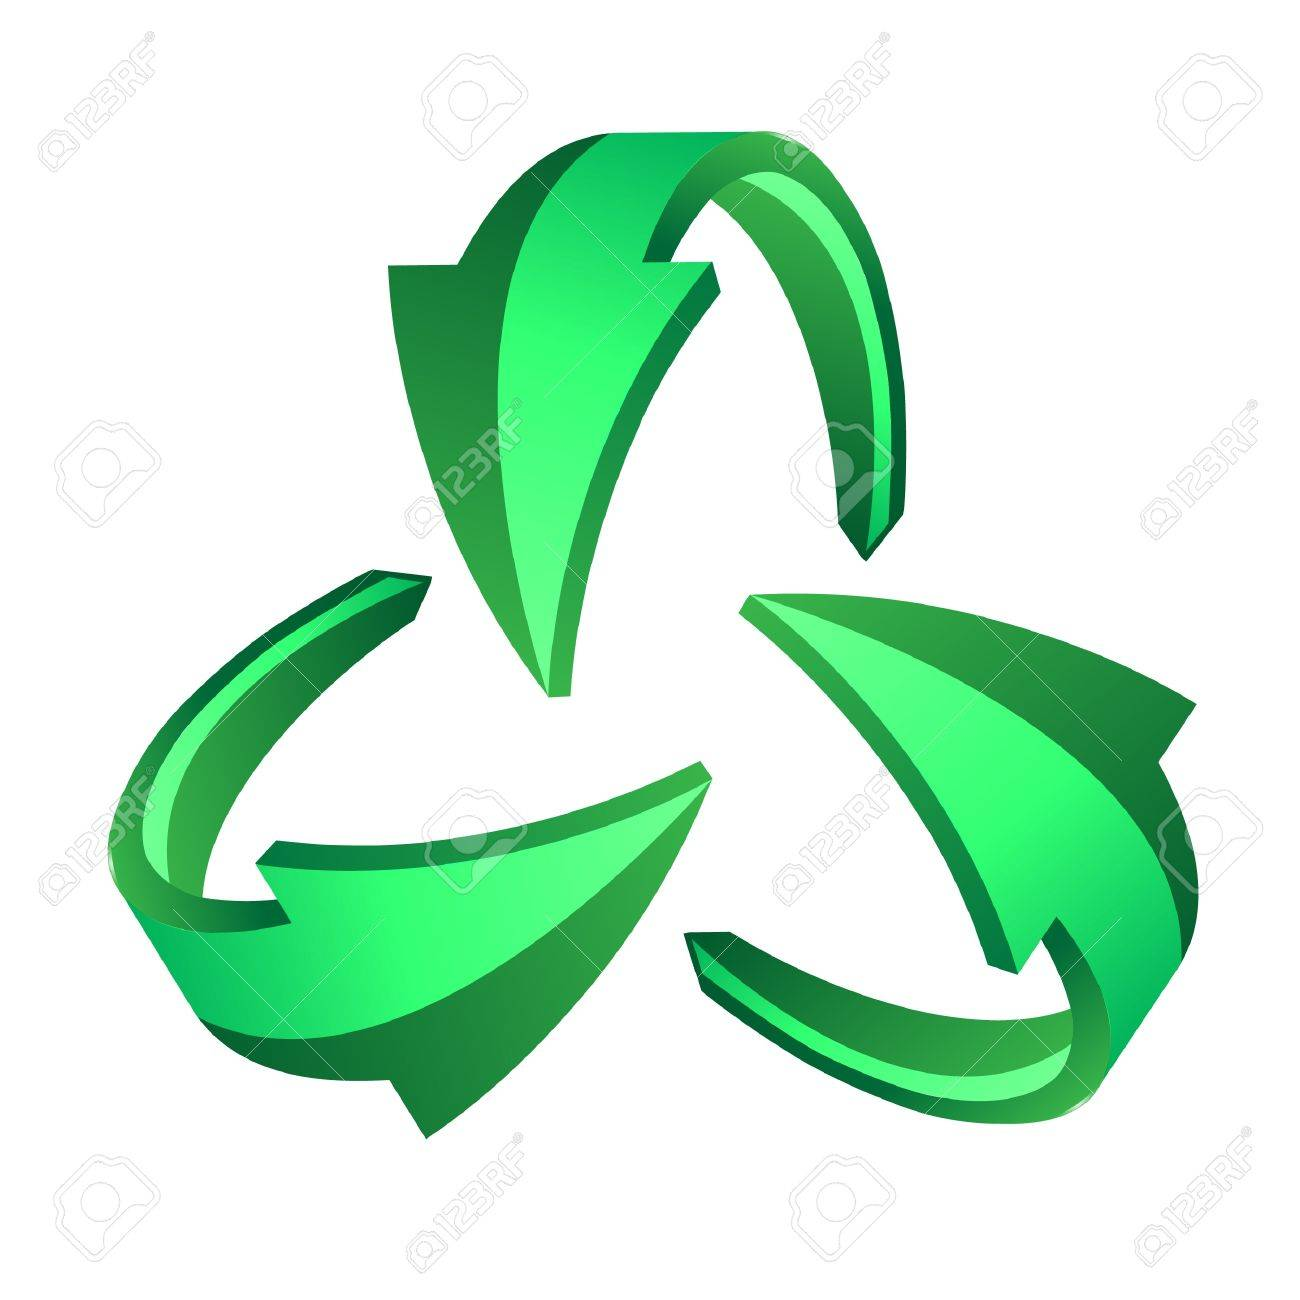 Recycle arrows, recycle symbol Stock Vector - 12151217